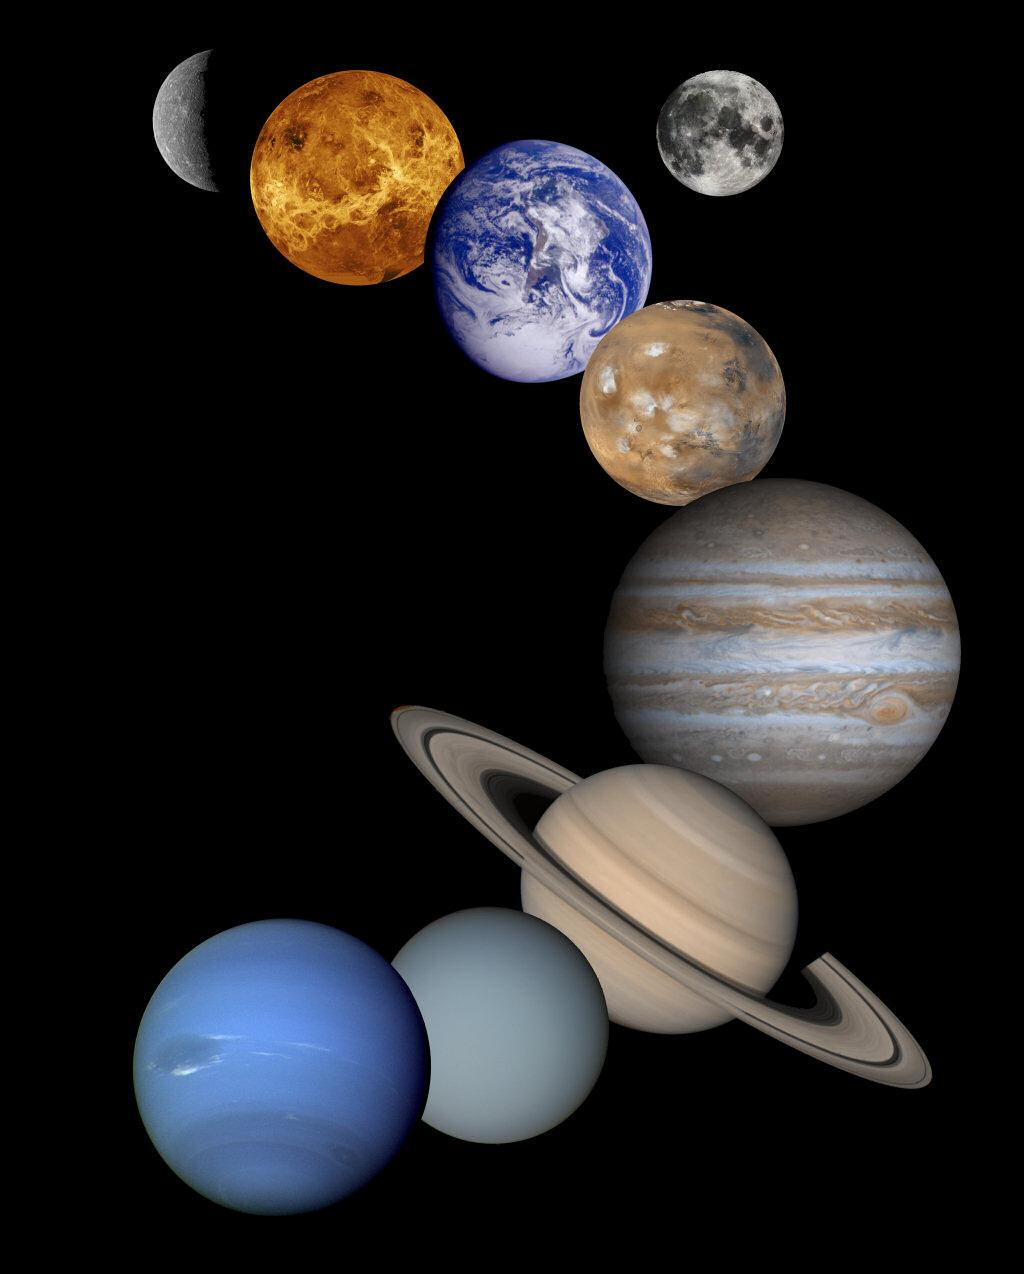 The Solar System is constituted by planets, satellites and other fragments of space the orbit around the Sun.